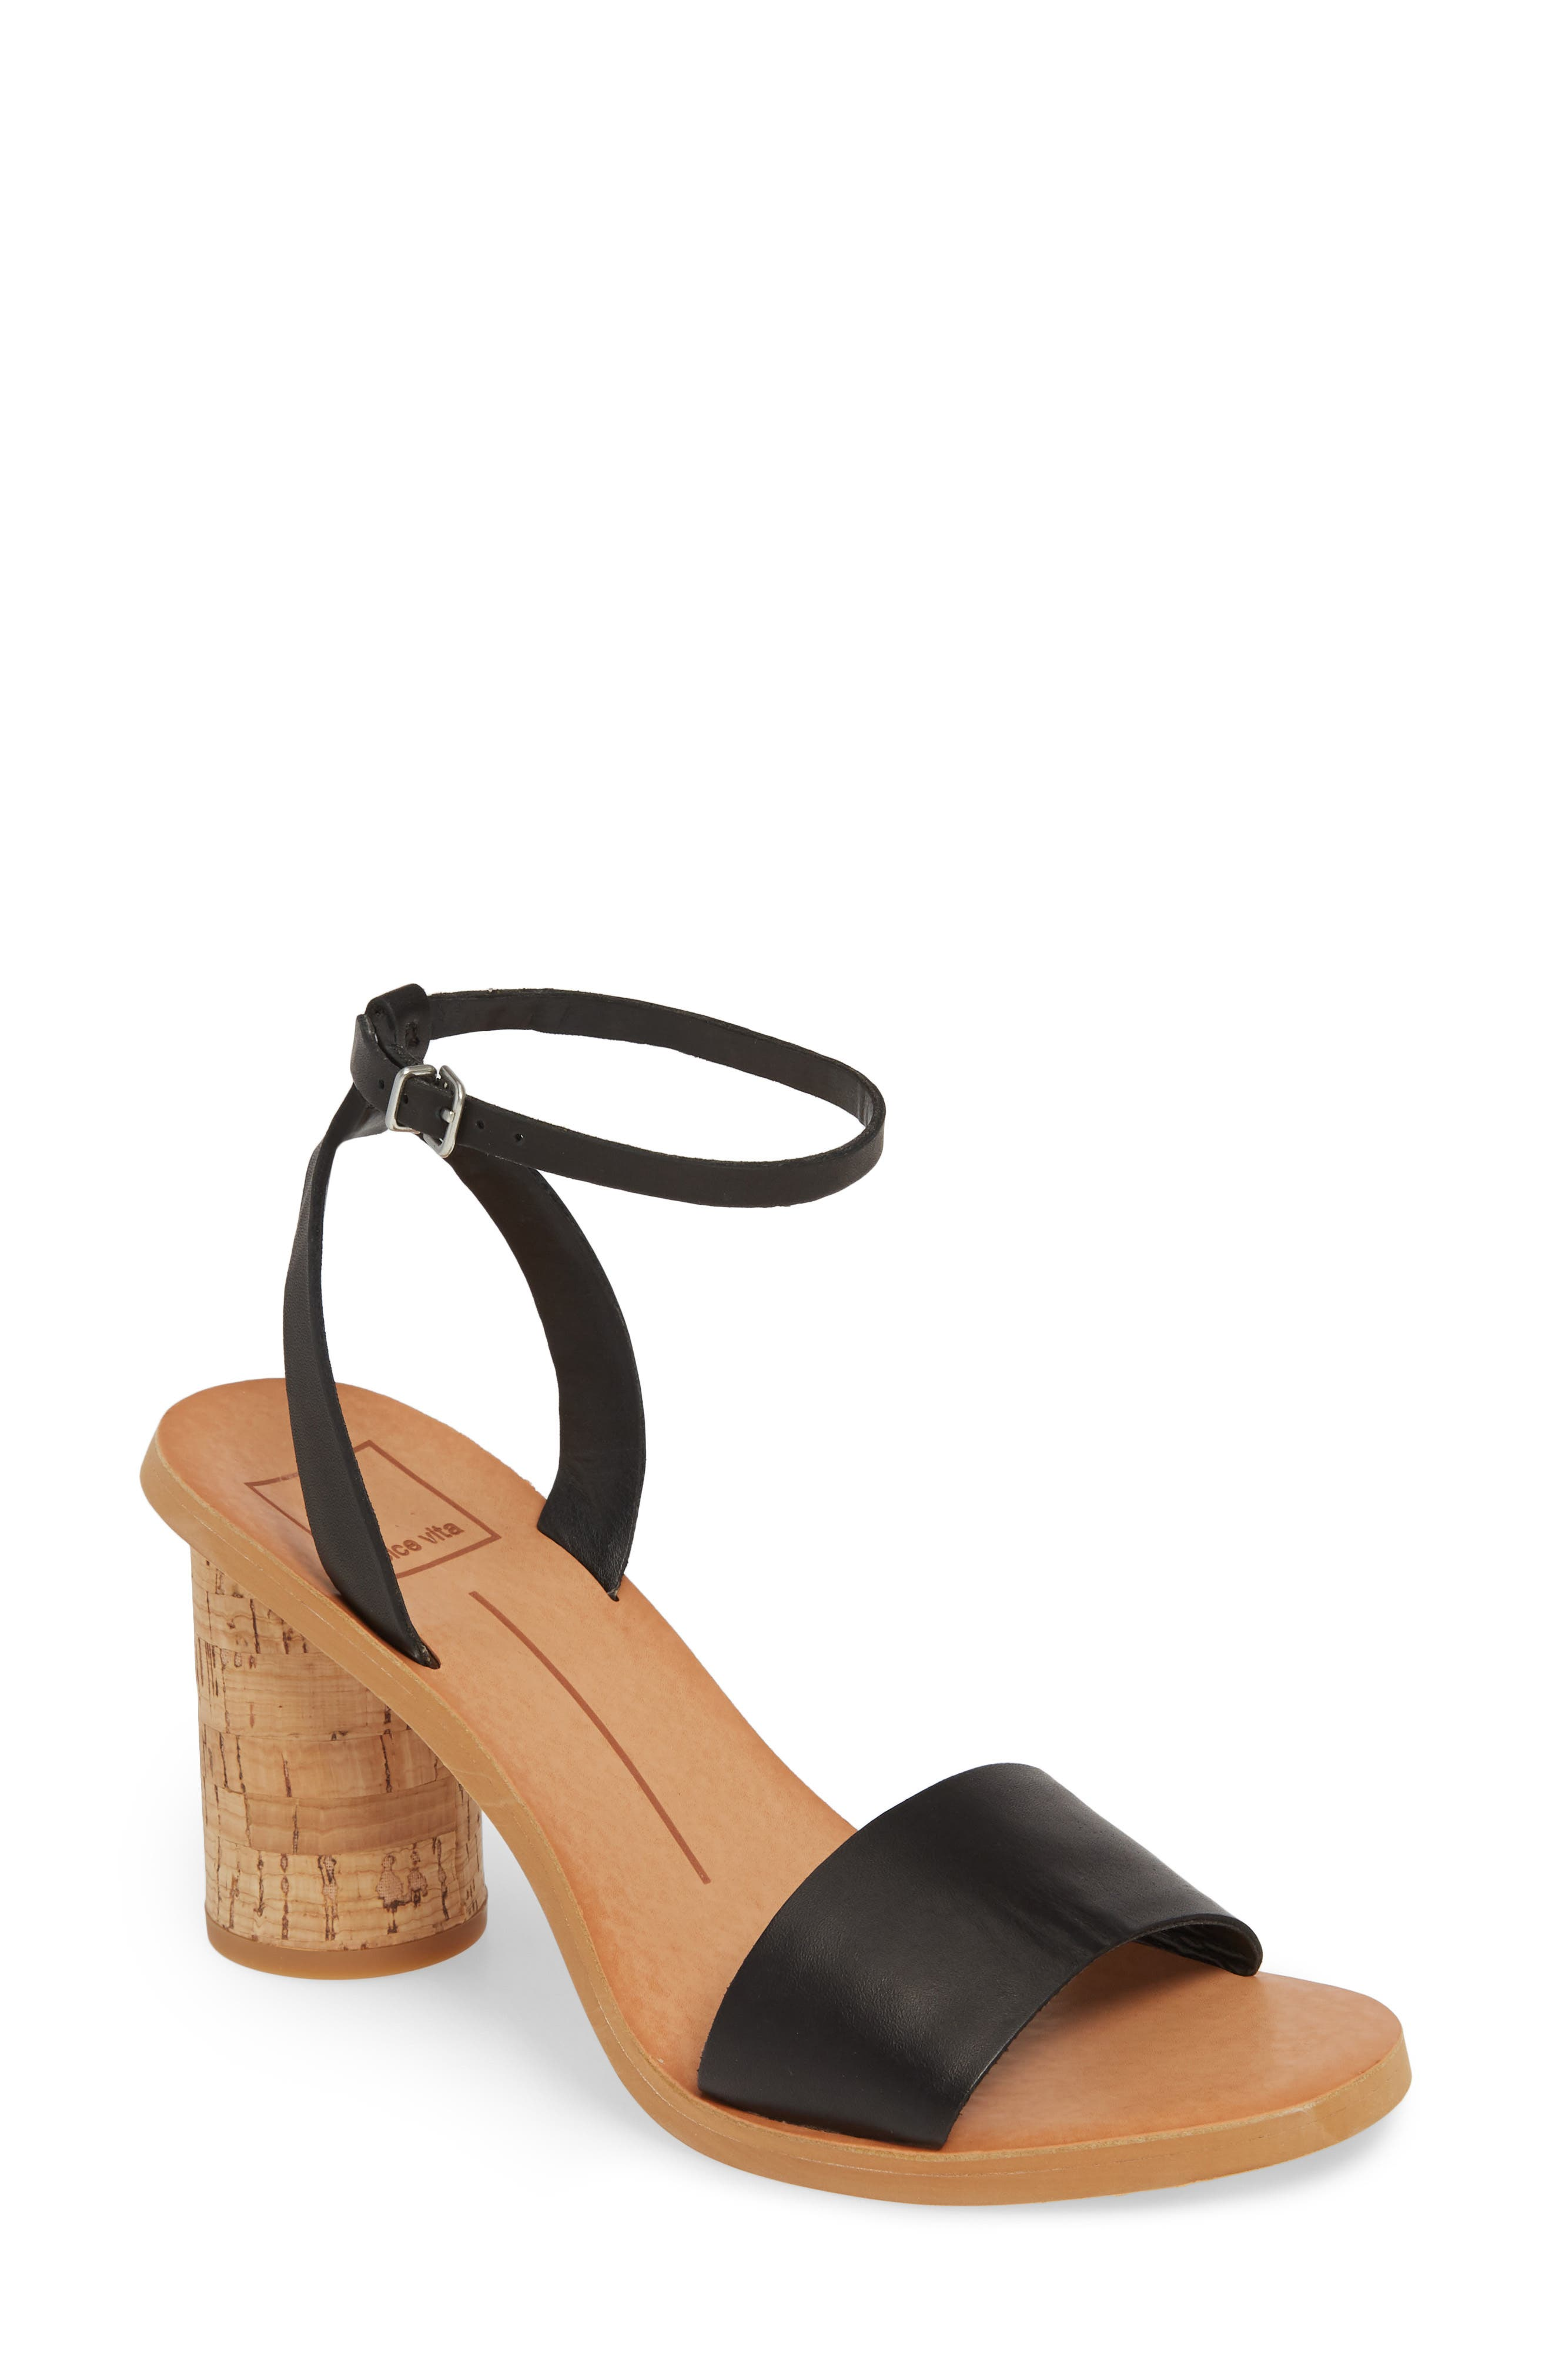 DOLCE VITA, Jali Column Heel Sandal, Main thumbnail 1, color, BLACK LEATHER